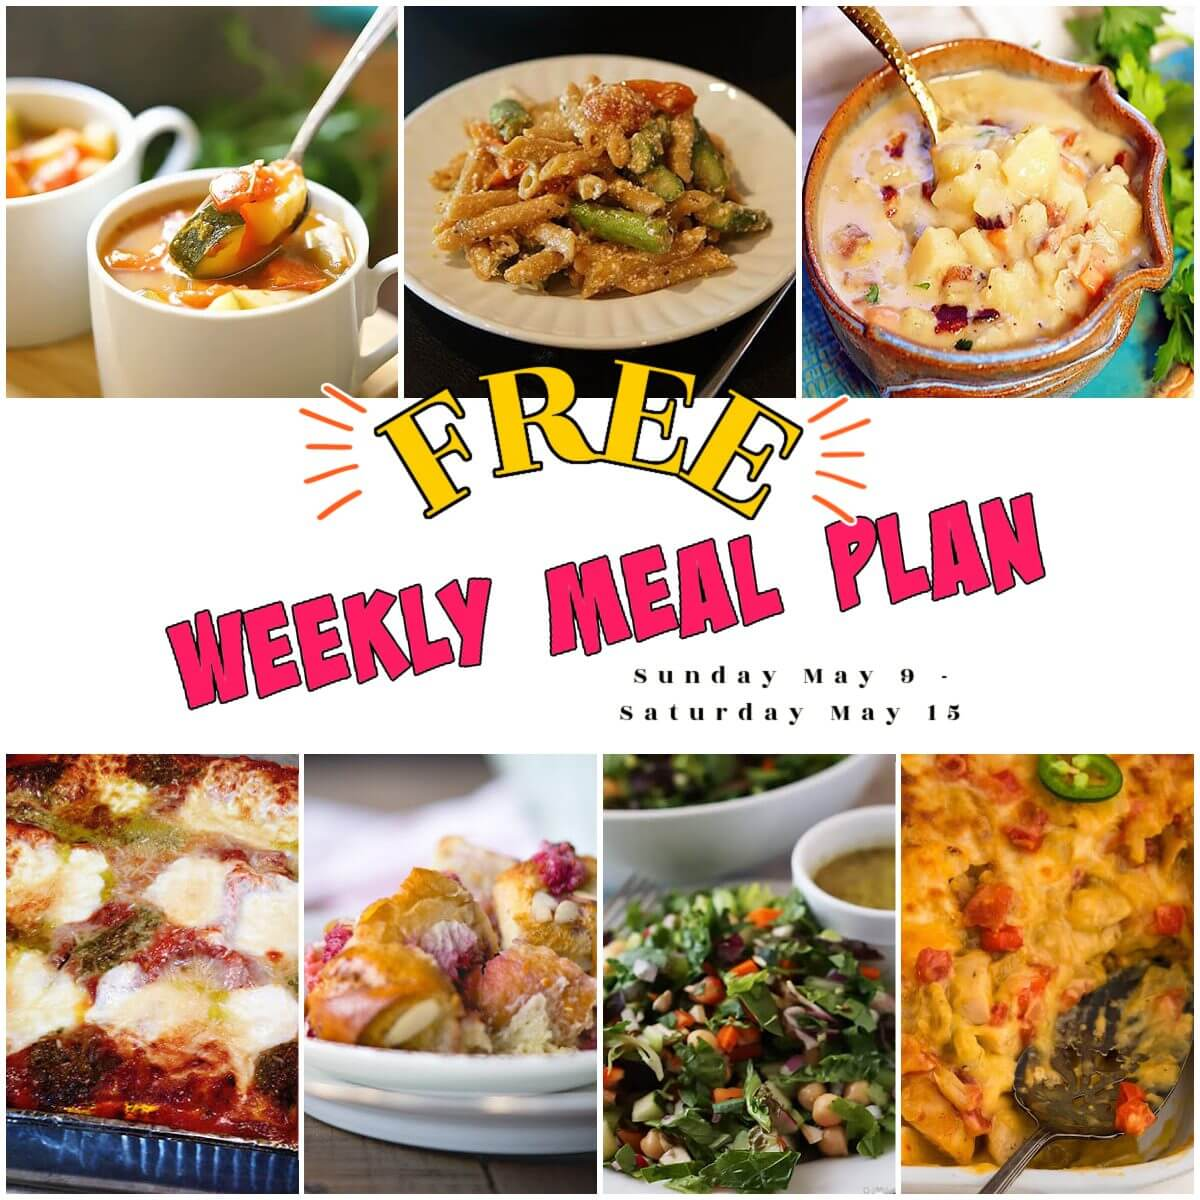 Weekly 19 meal plan photo collage, with print overlay.